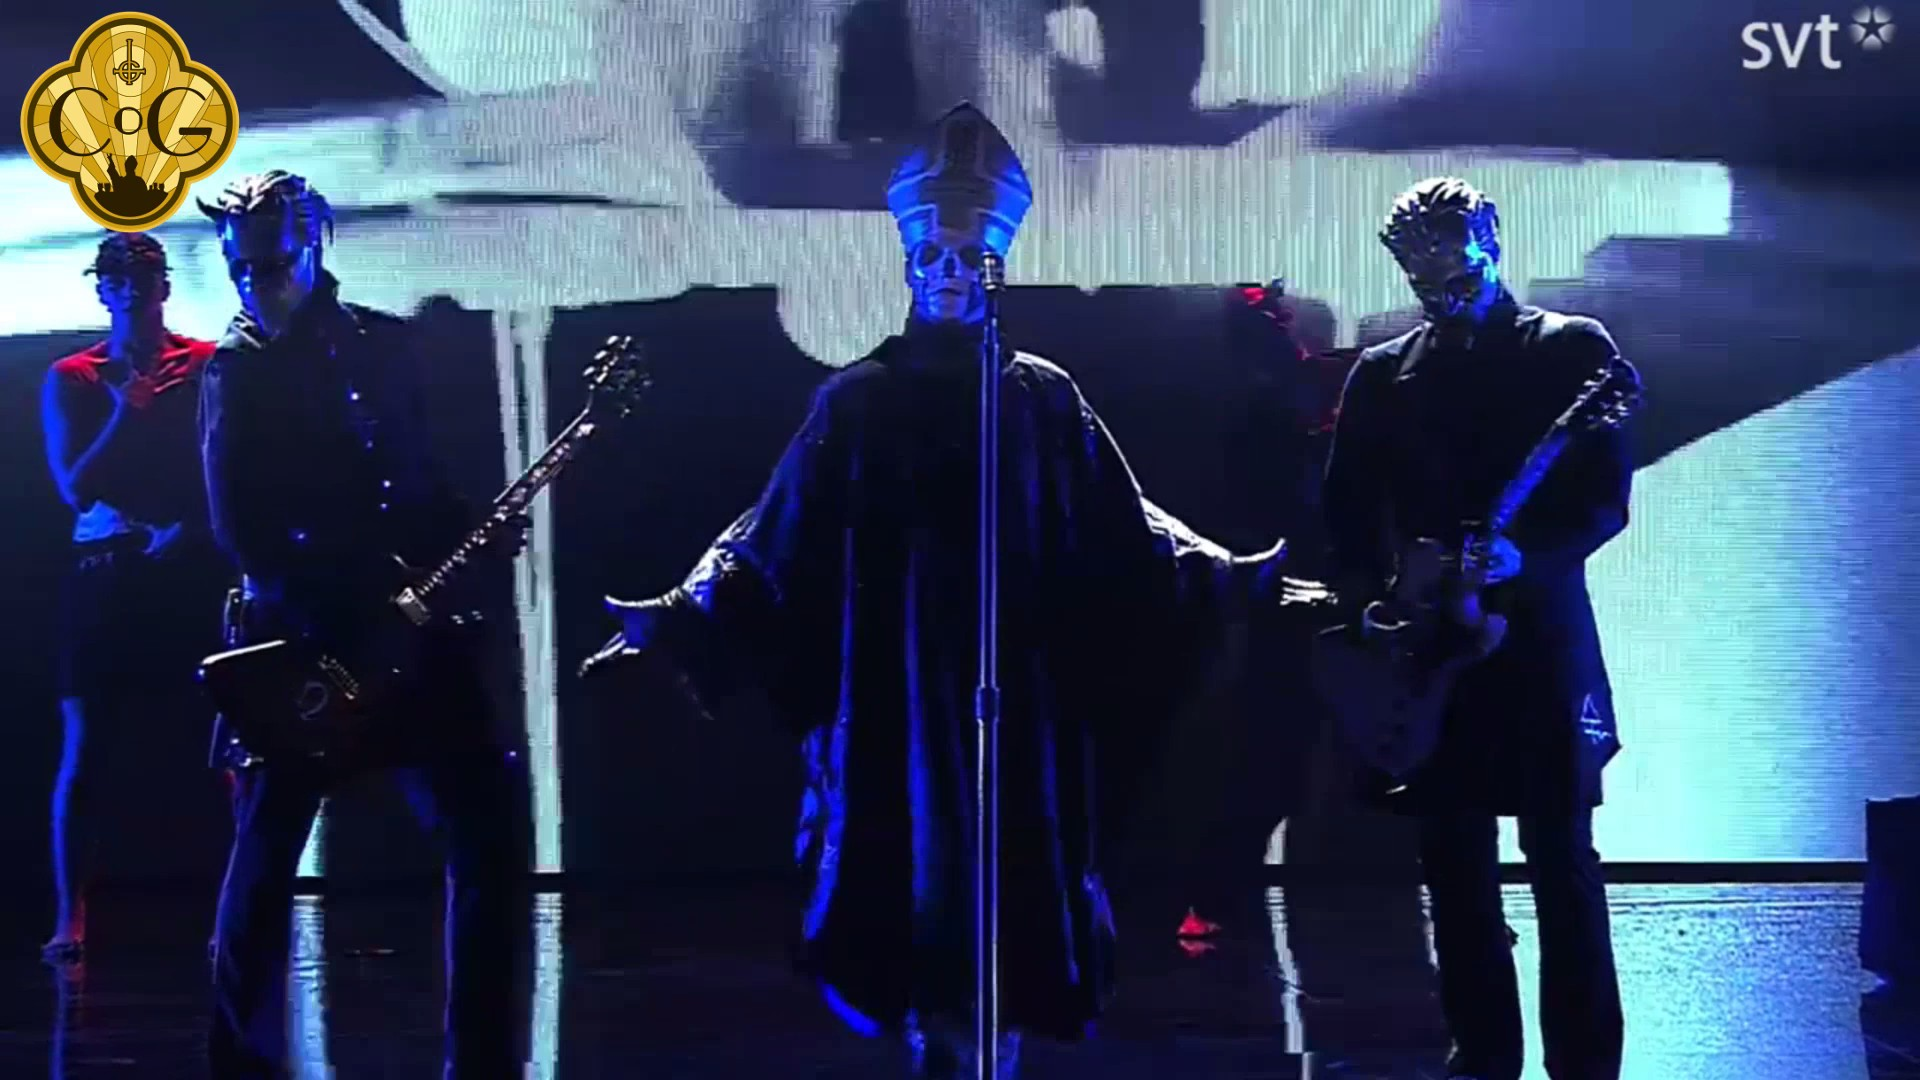 Ghost Performing 'He Is' At The Grammis